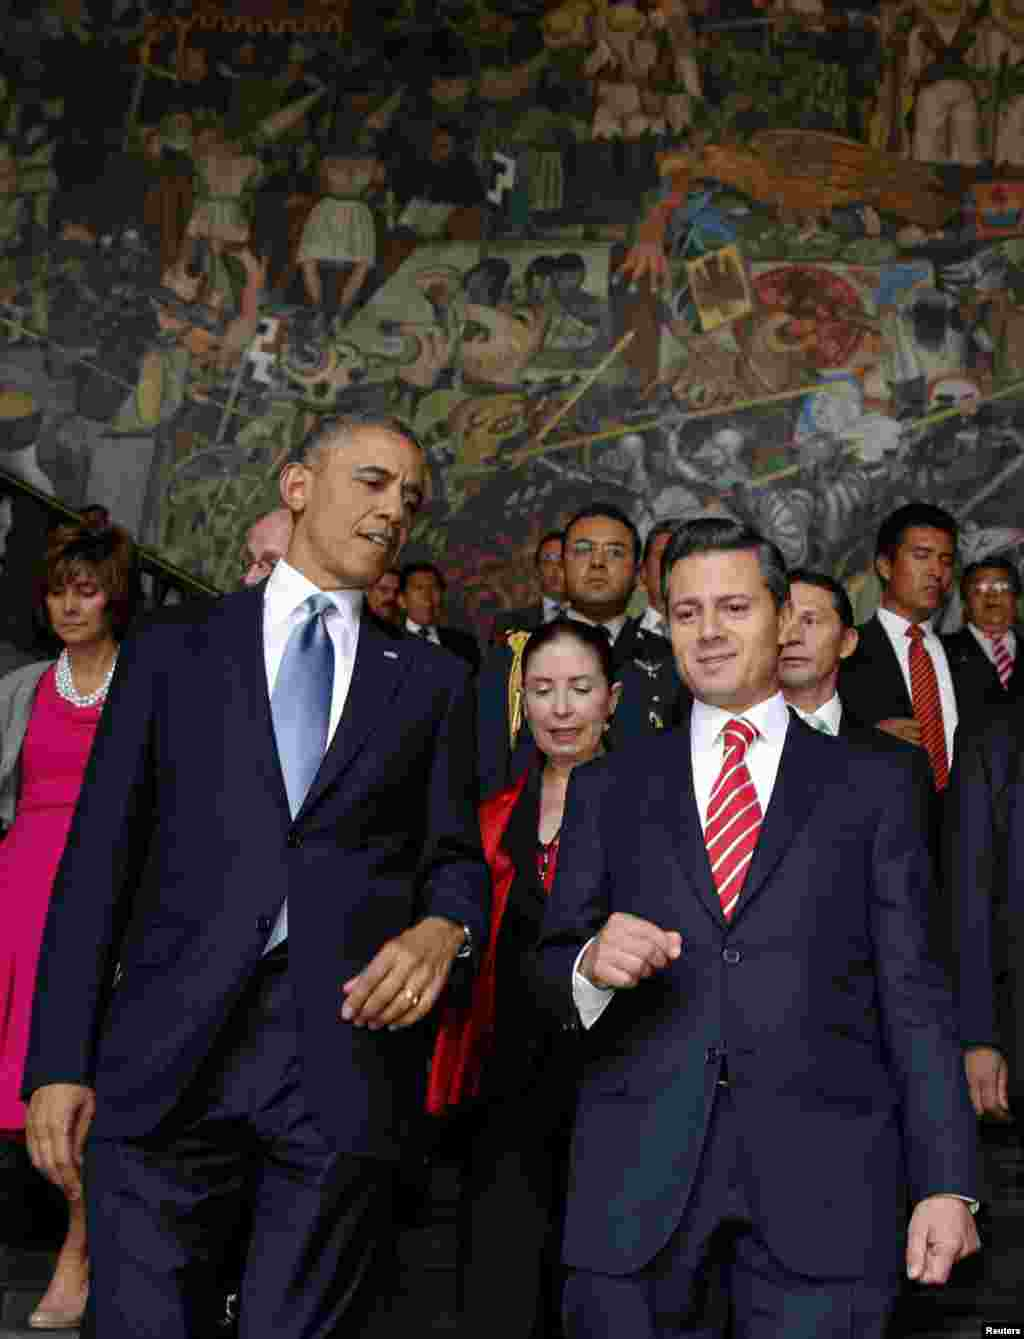 U.S. President Barack Obama and his Mexican counterpart Enrique Pena Nieto walk down a staircase at the National Palace in Mexico City, May 2, 2013.